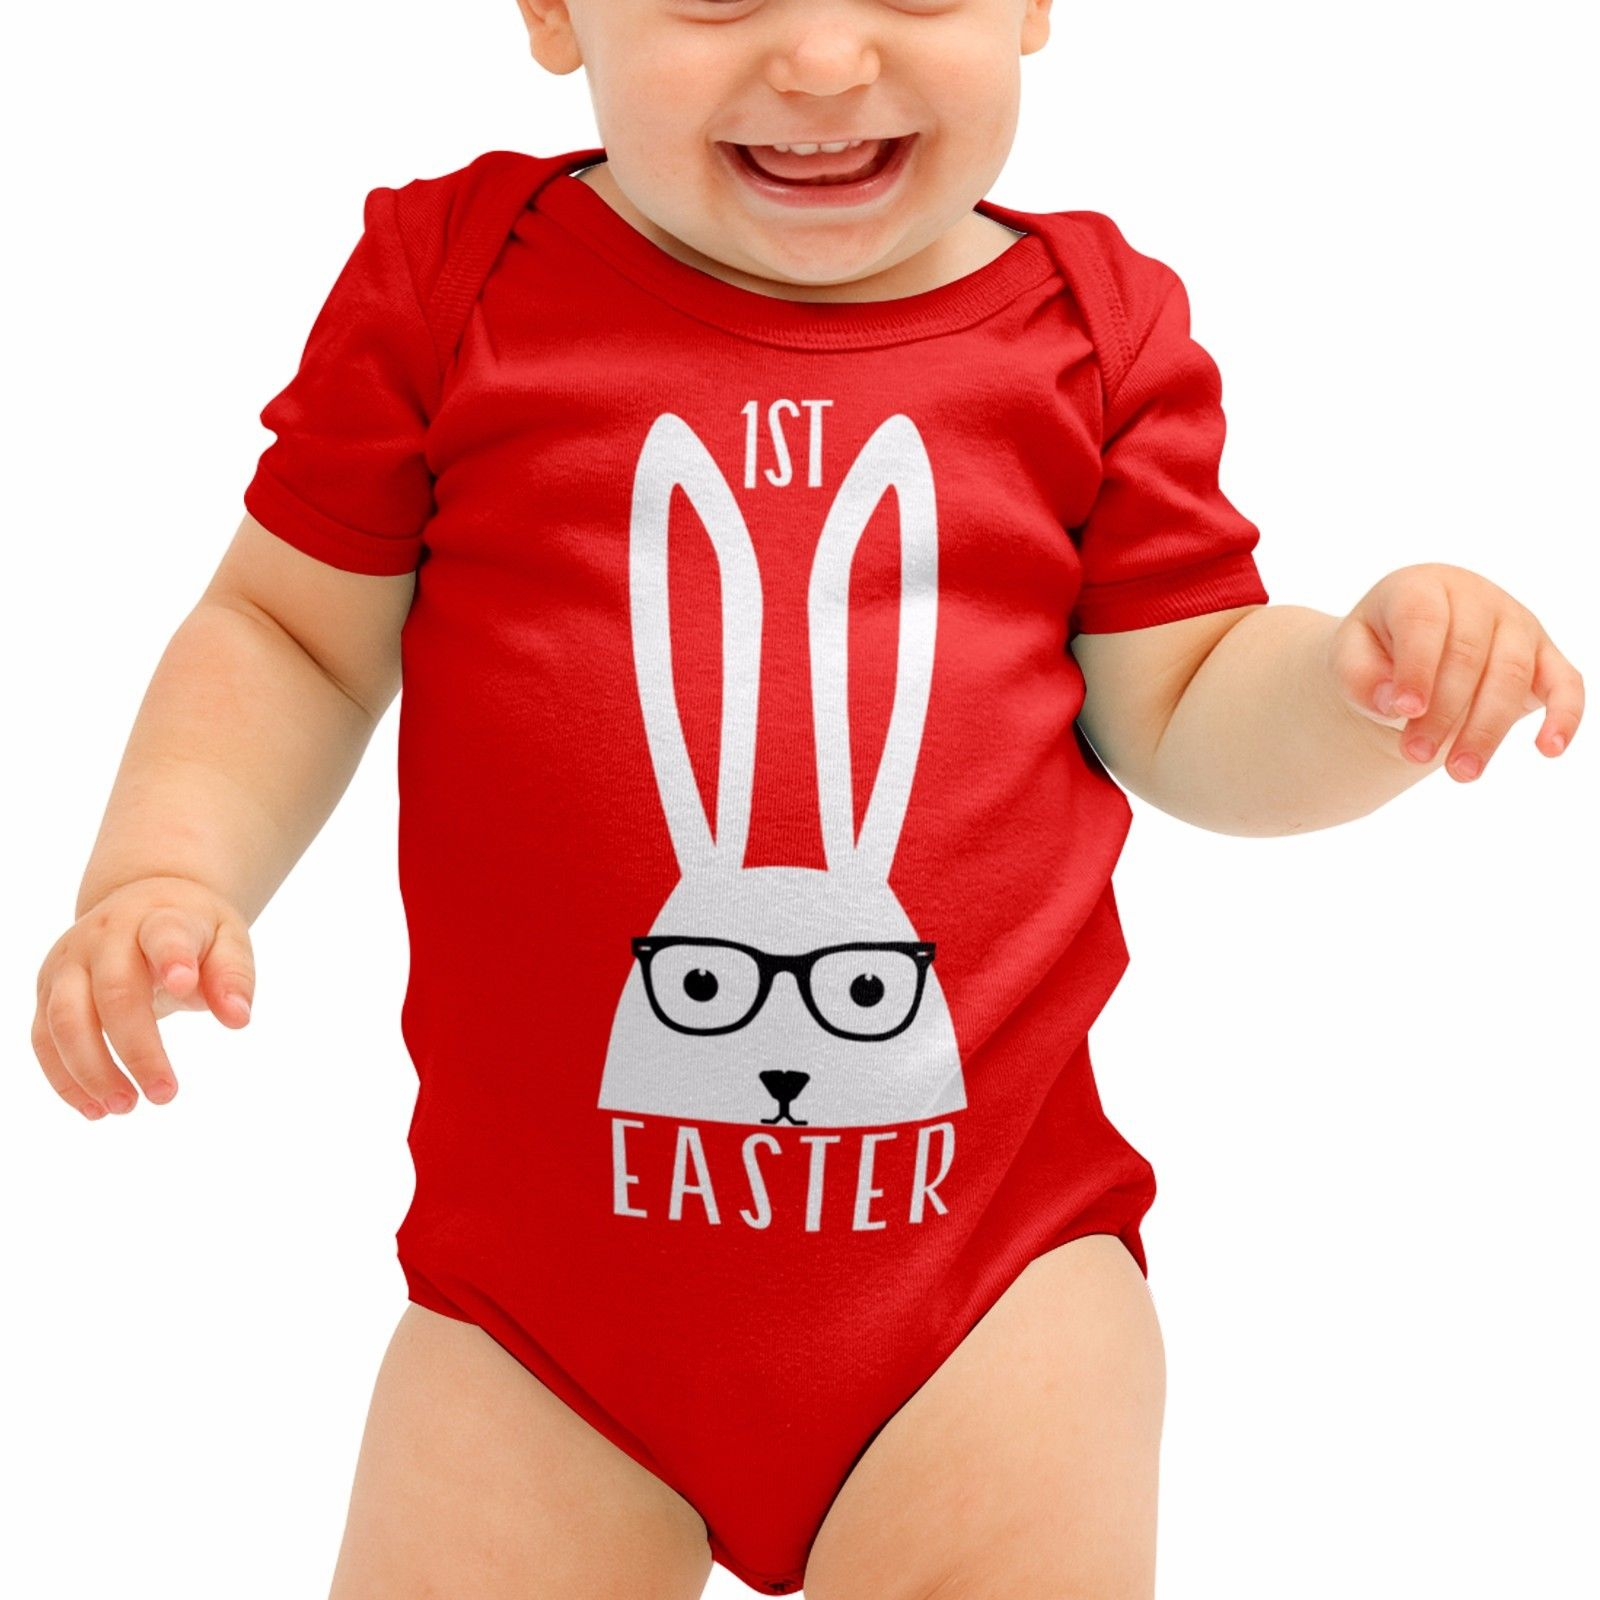 5929485b3316 1st Easter Bunny Egg Funny Cute Baby Grow Gift Babygrow Romper Body Suit  B31. Product image 1 ...